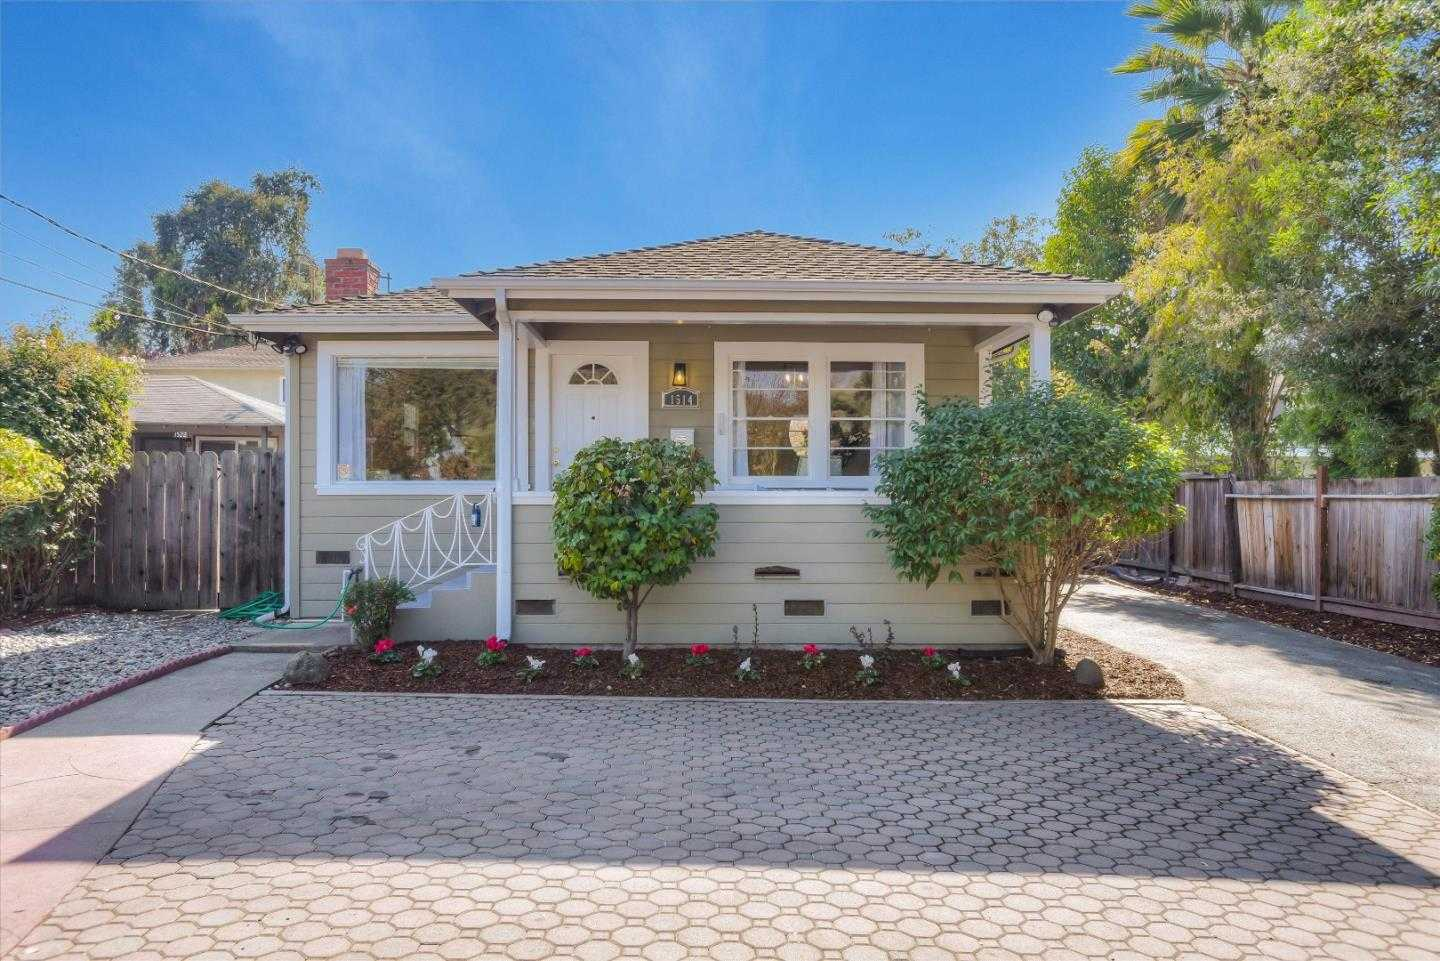 $1,198,000 - 2Br/1Ba -  for Sale in Redwood City